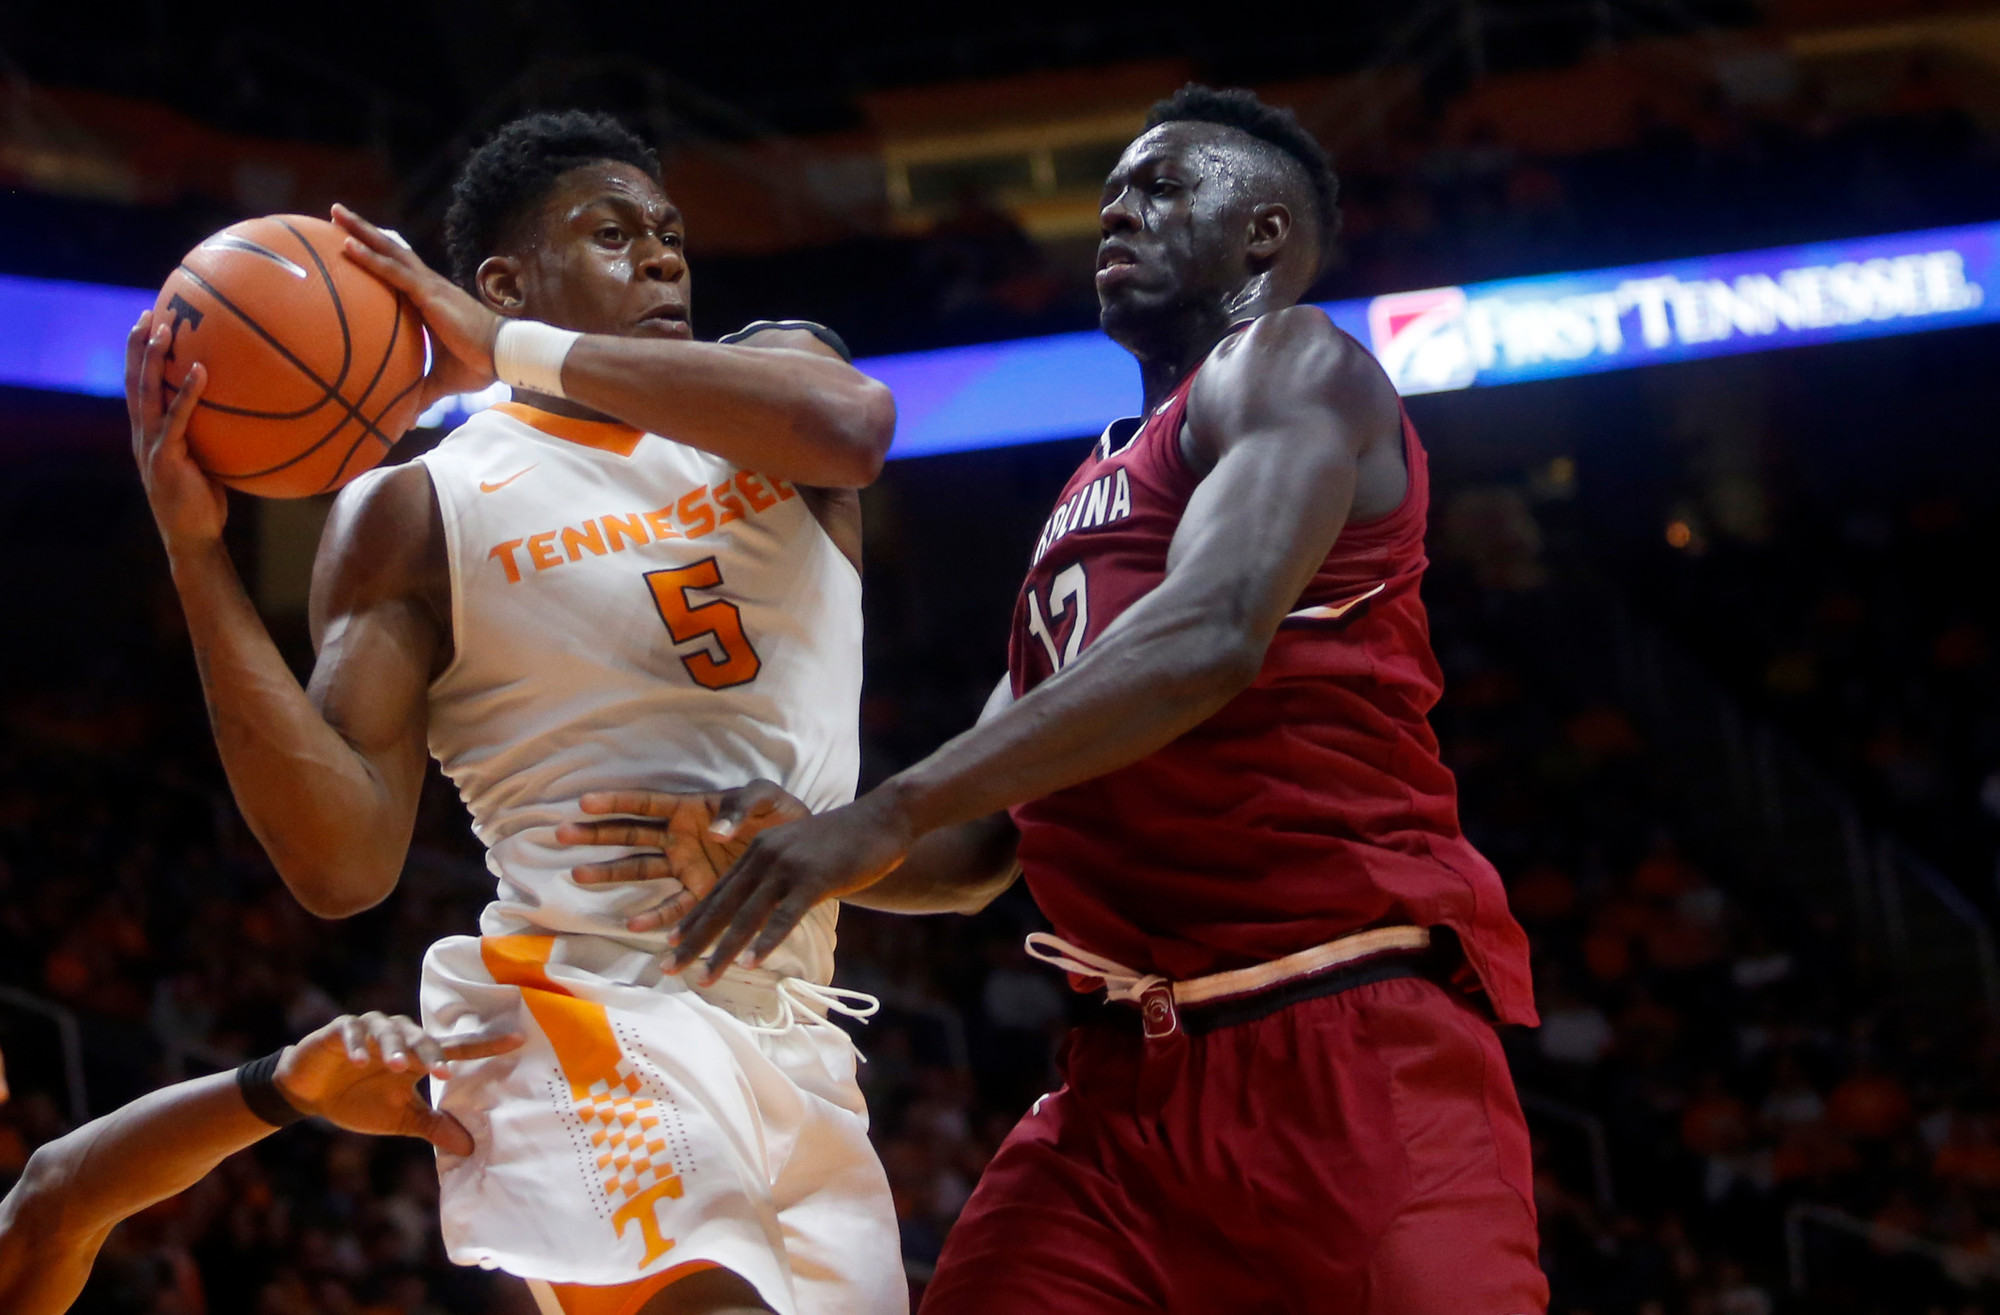 Tennessee forward Admiral Schofield (5) grabs the ball in front of South Carolina forward Khadim Gueye (12) in the Volunteers' 70-67 victory on Tuesday in Knoxville, Tenn.